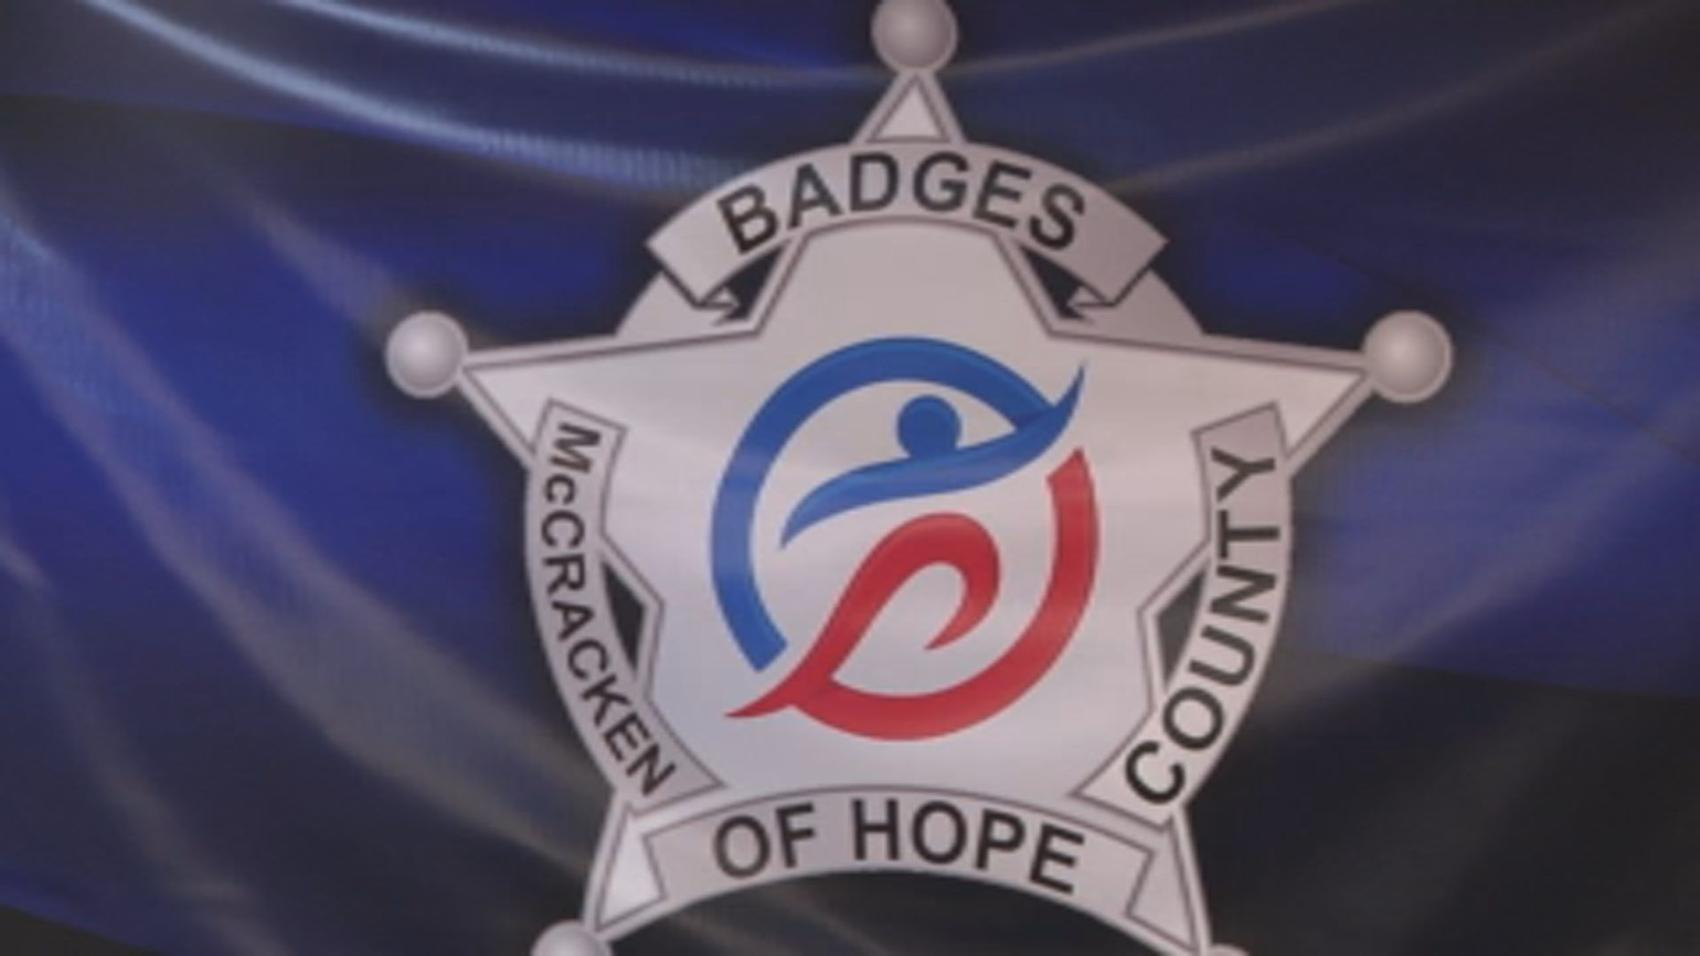 Badges of Hope aims to tackle drug epidemic in our community